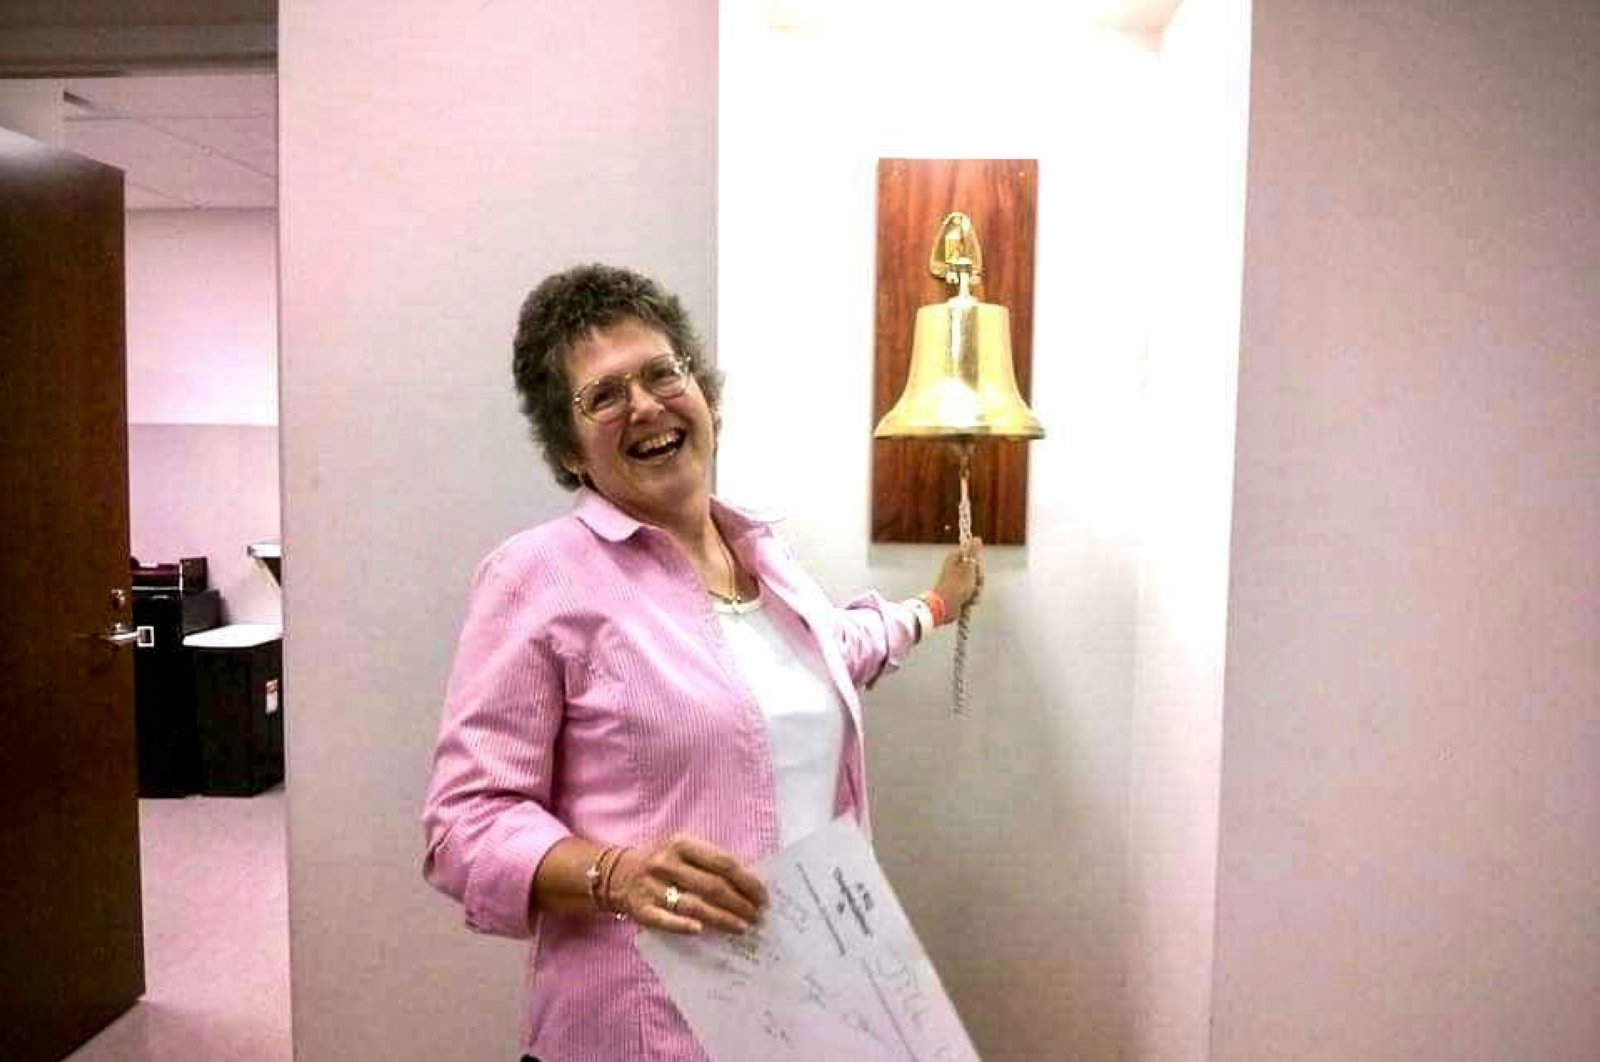 Jill Leach ringing the brass bell of triumph at the chemotherapy ward after completing her rounds of treatment. (Photo courtesy of Jill Leach)